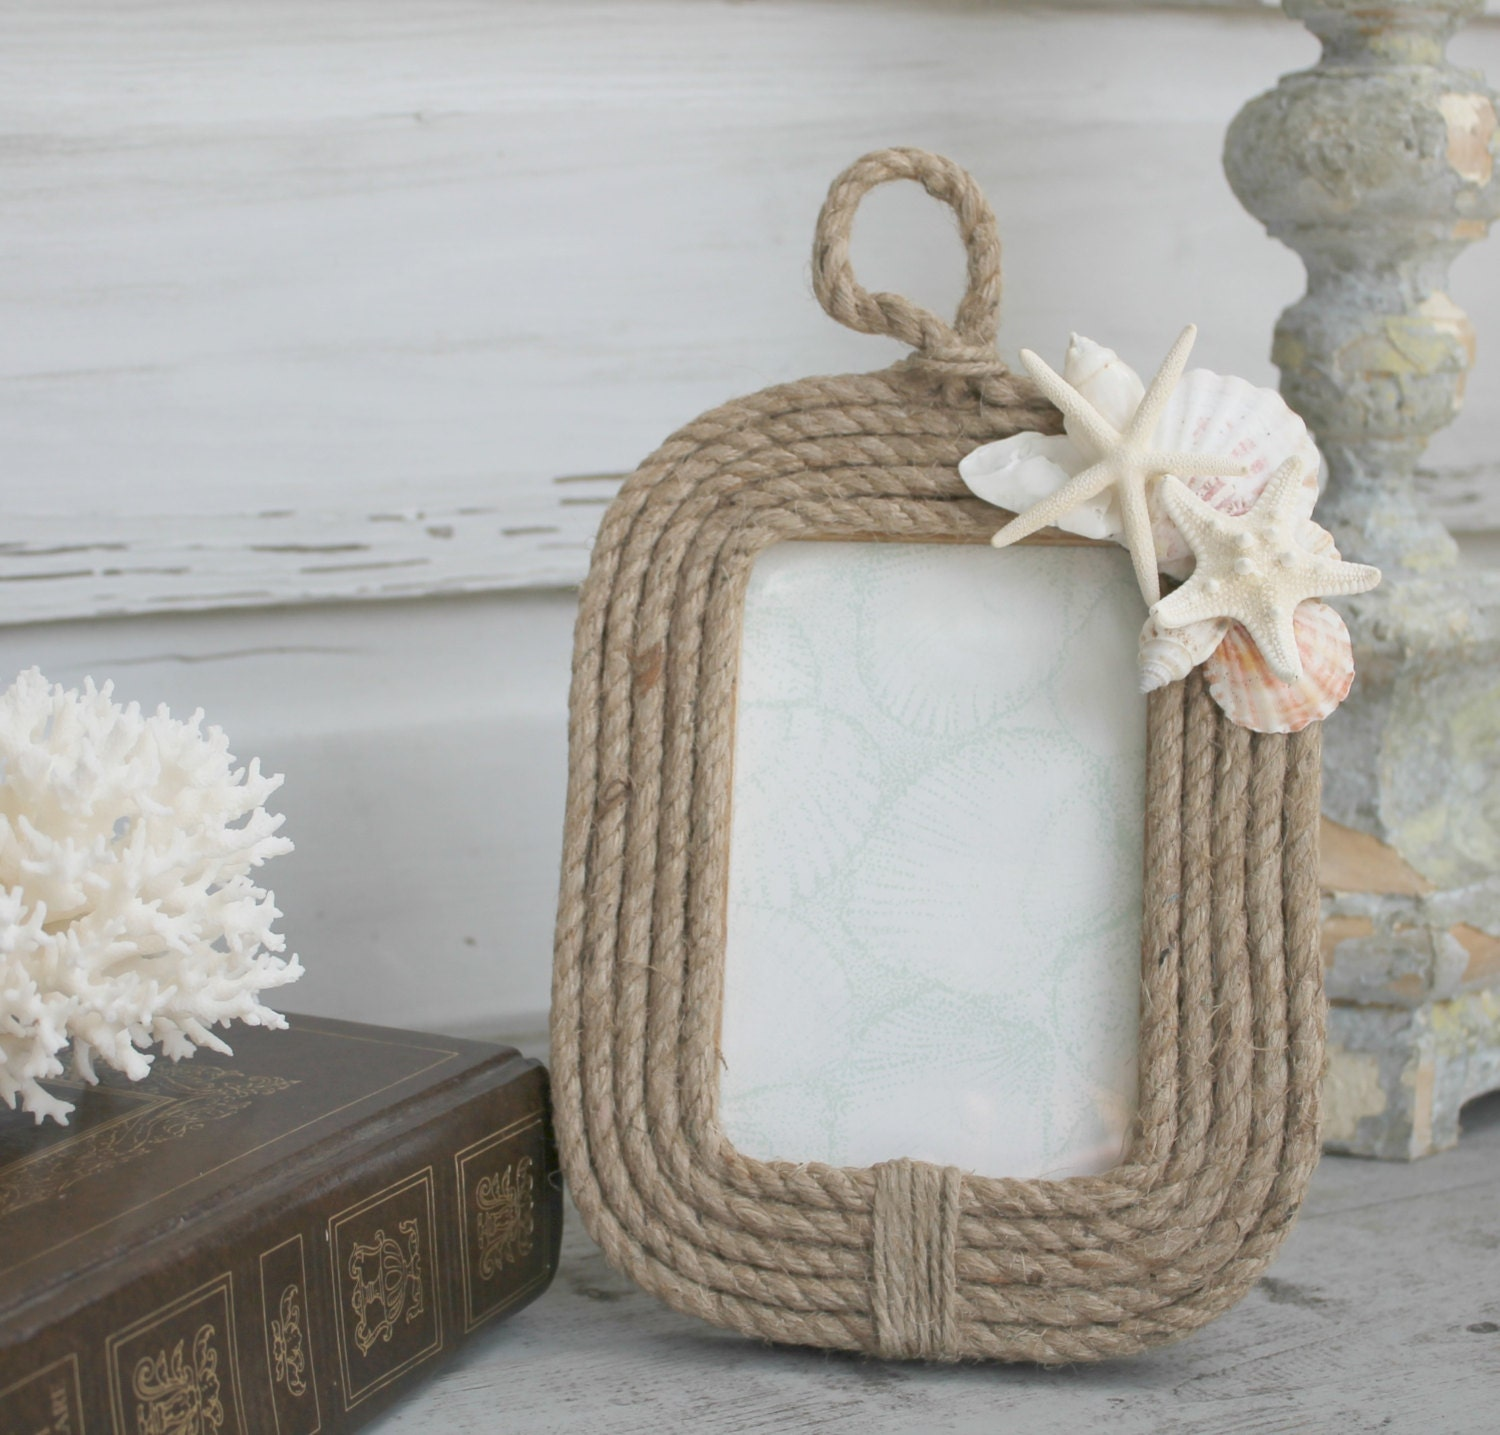 Seashell Nautical Rope Frame Coastal Photo Frame 4x6 Picture: rope photo frame